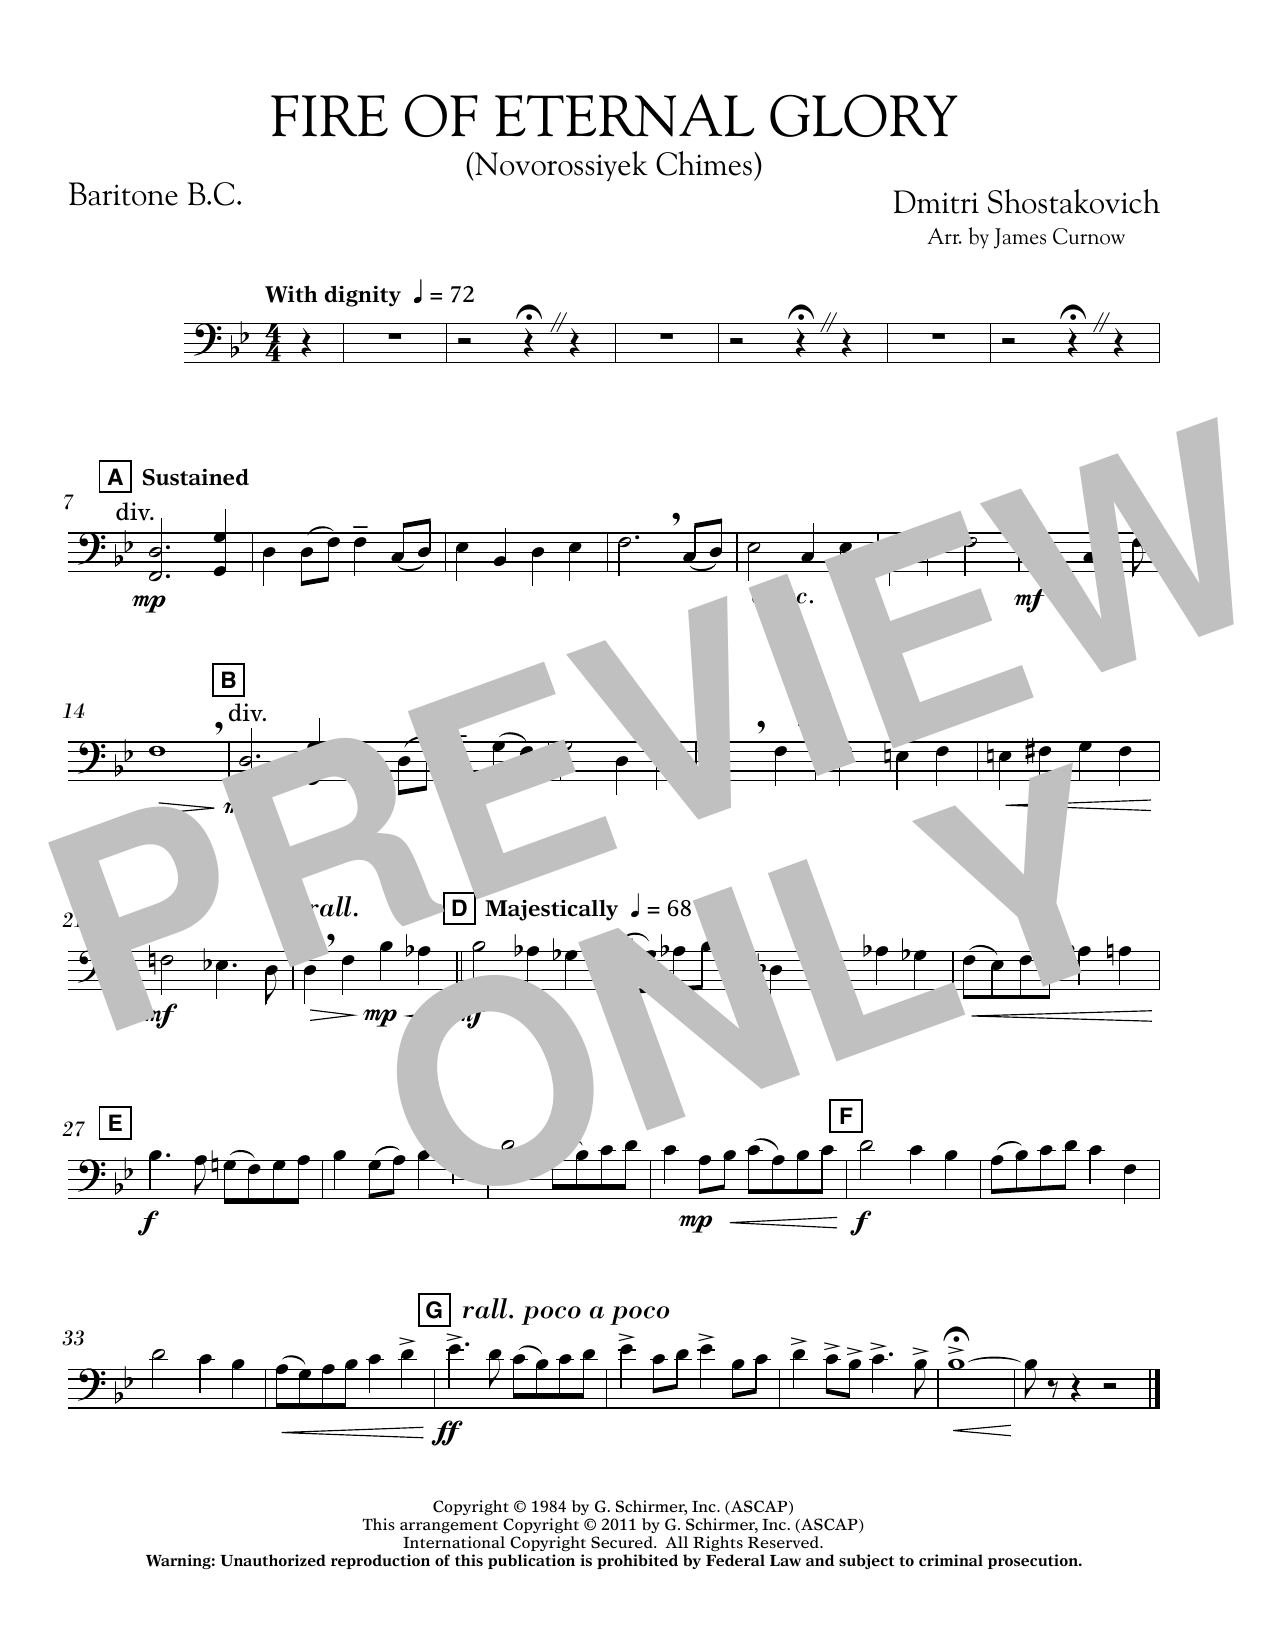 James Curnow Fire of Eternal Glory (Novorossiyek Chimes) - Baritone B.C. sheet music notes and chords. Download Printable PDF.